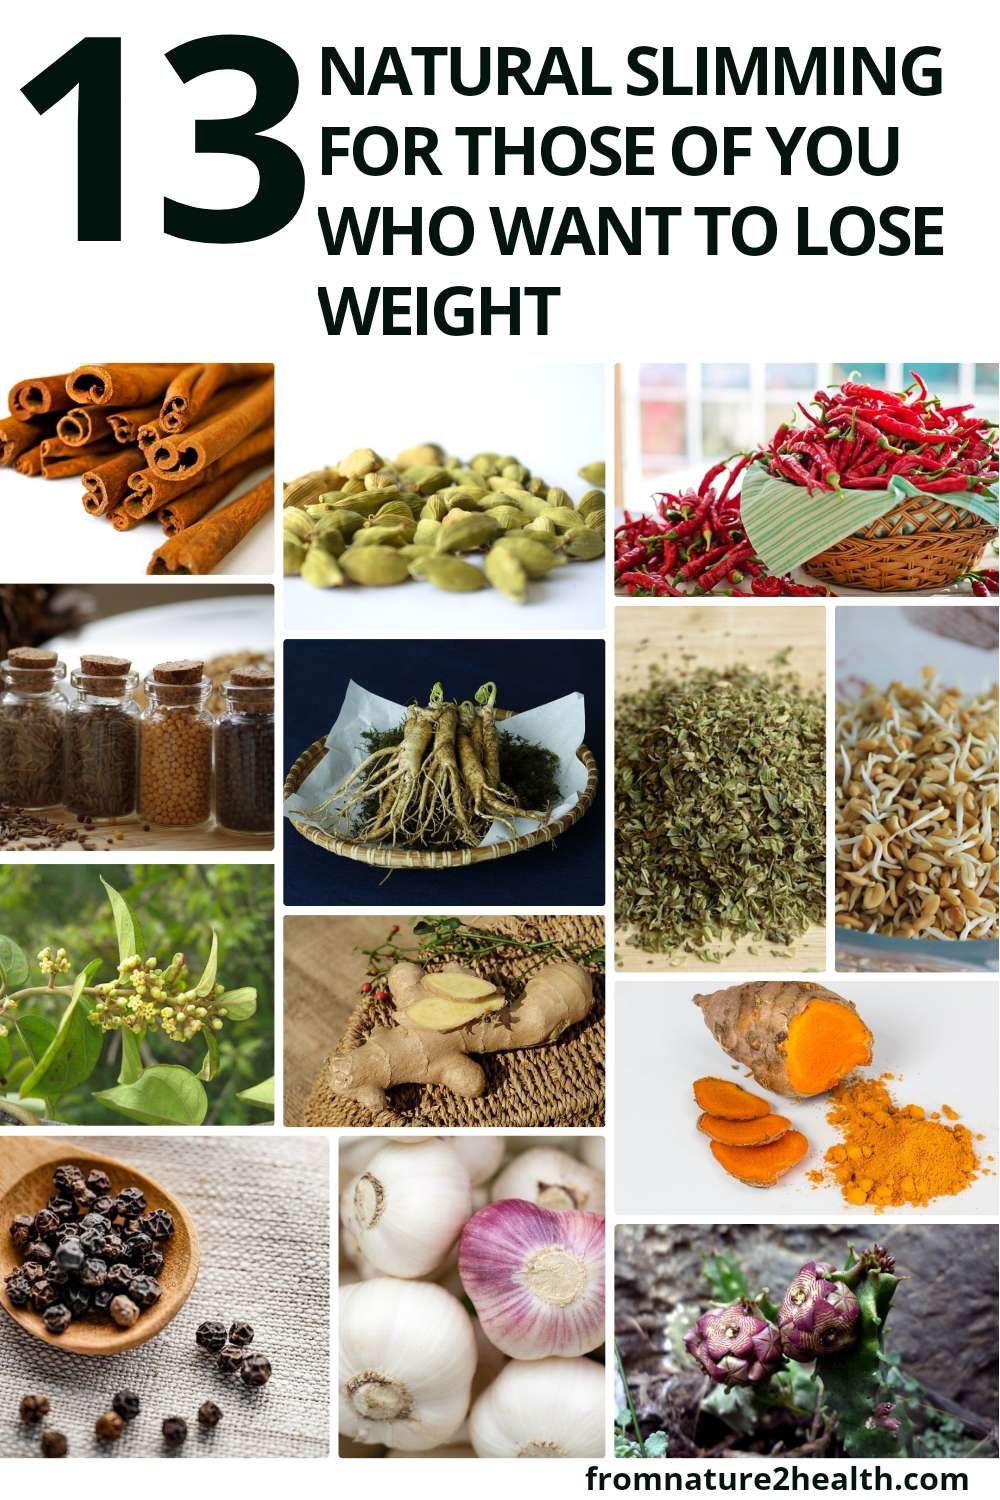 13 Natural Slimming For Those Of You Who Want To Lose Weight